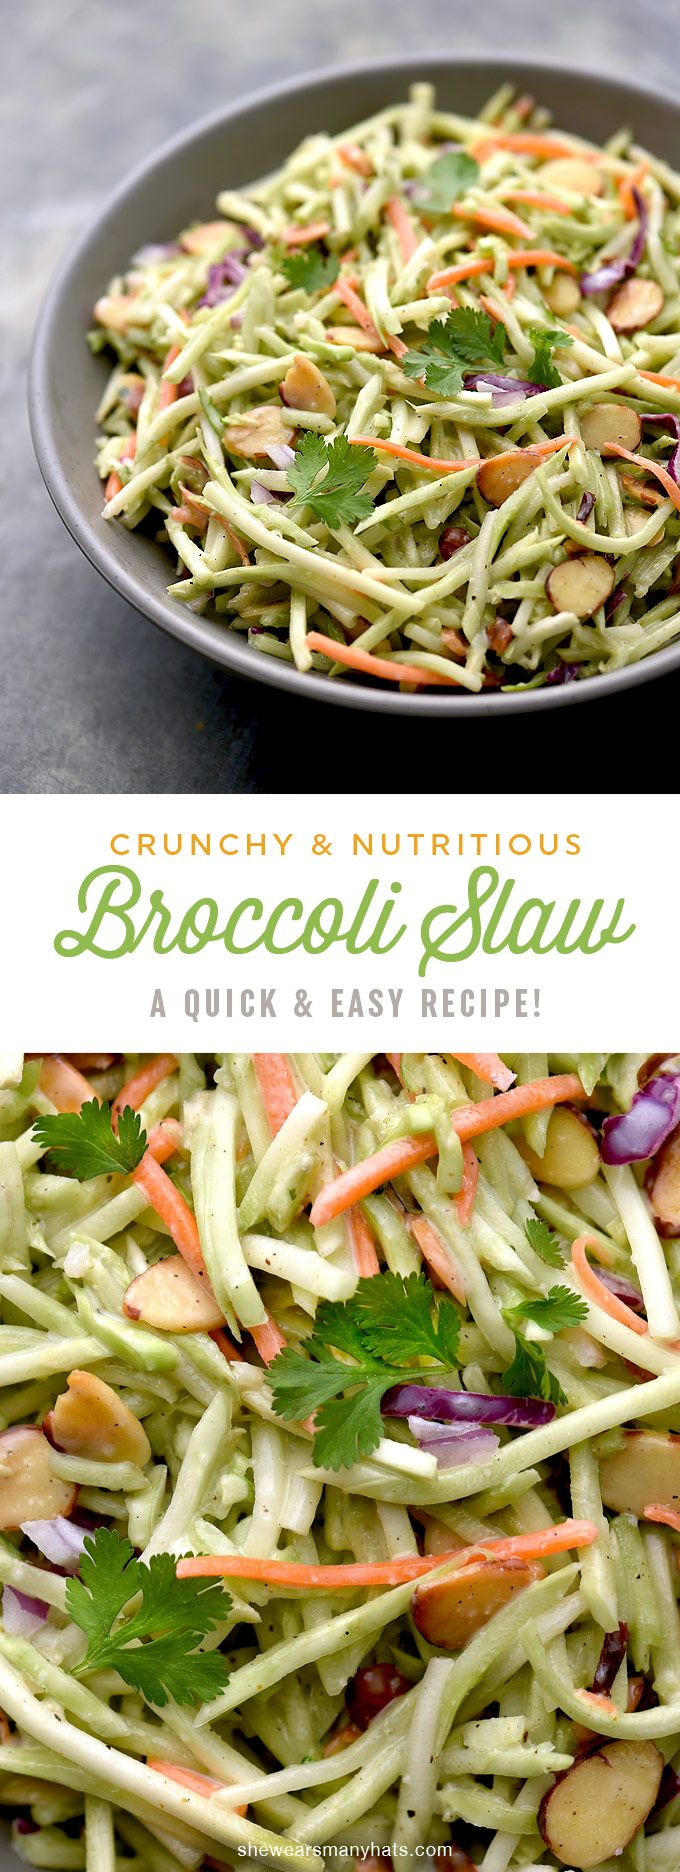 recipe: broccoli slaw salad paleo [14]